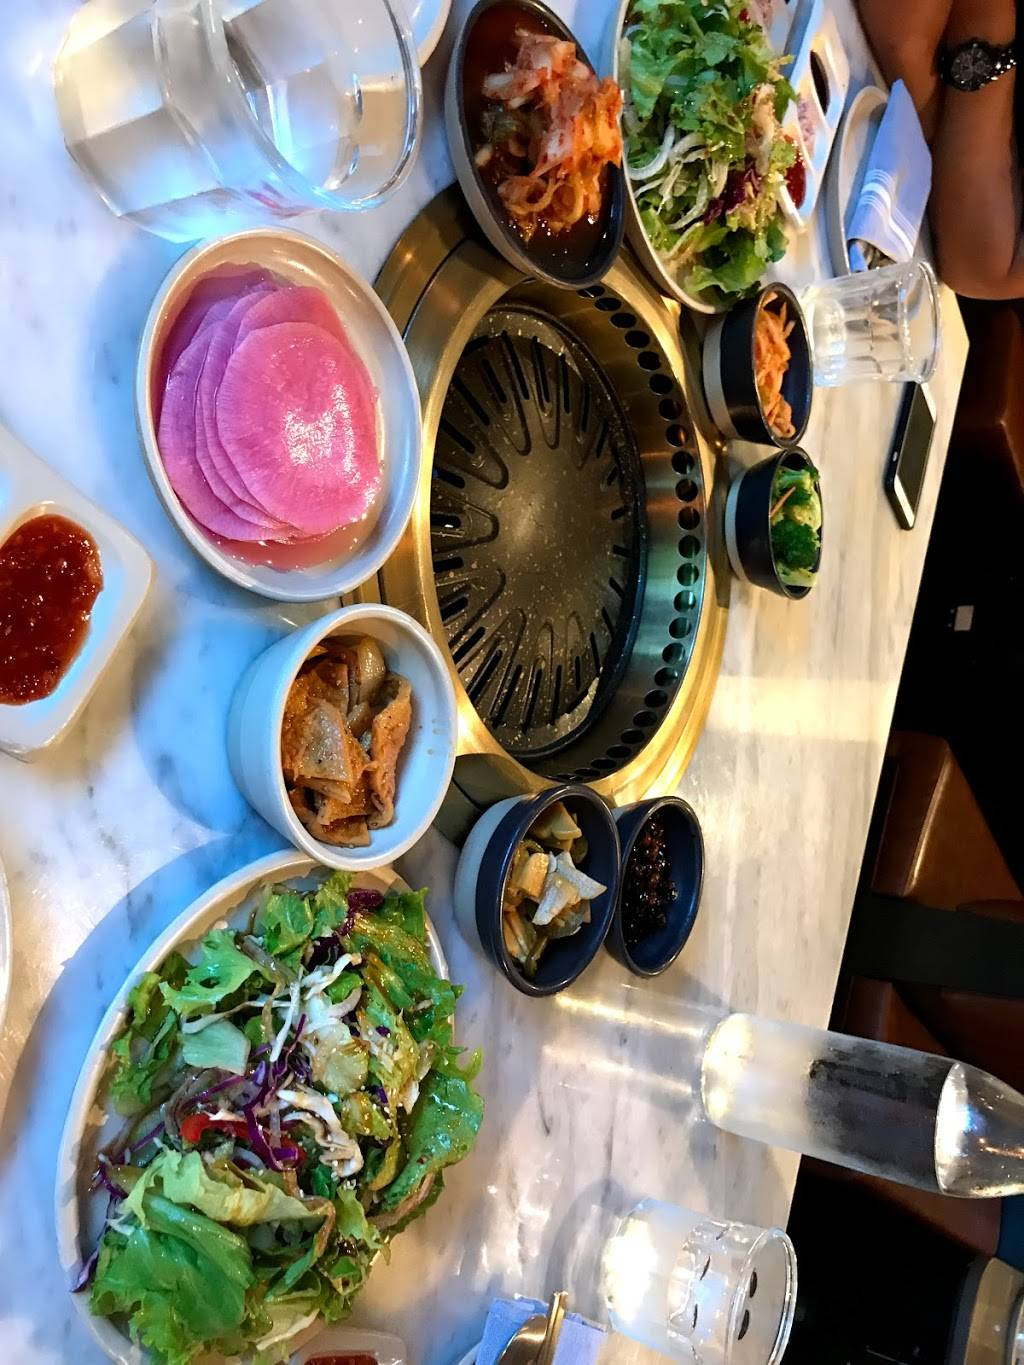 ARI Korean BBQ & The Cakeshop | restaurant | 9700 Medlock Bridge Rd Suite 112, Johns Creek, GA 30097, USA | 7708028800 OR +1 770-802-8800